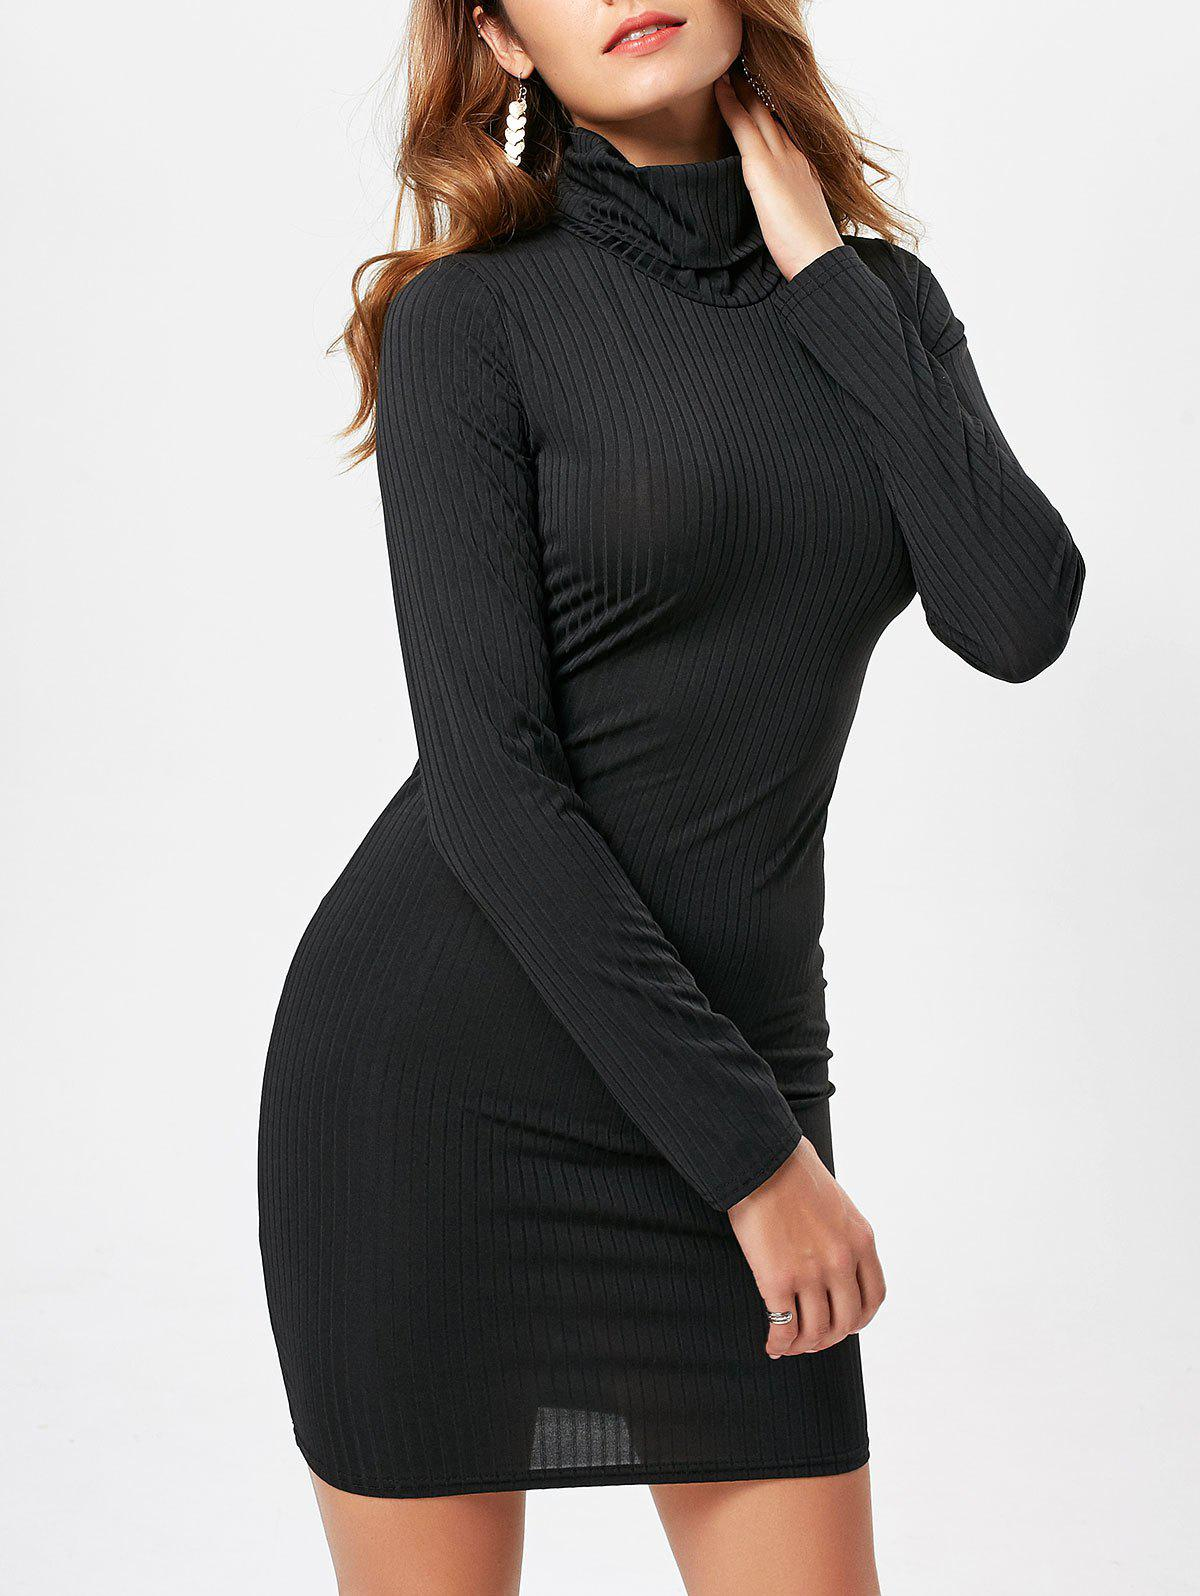 Graceful Turtleneck Long Sleeve Solid Color Bodycon Sweater Dress For Women все цены